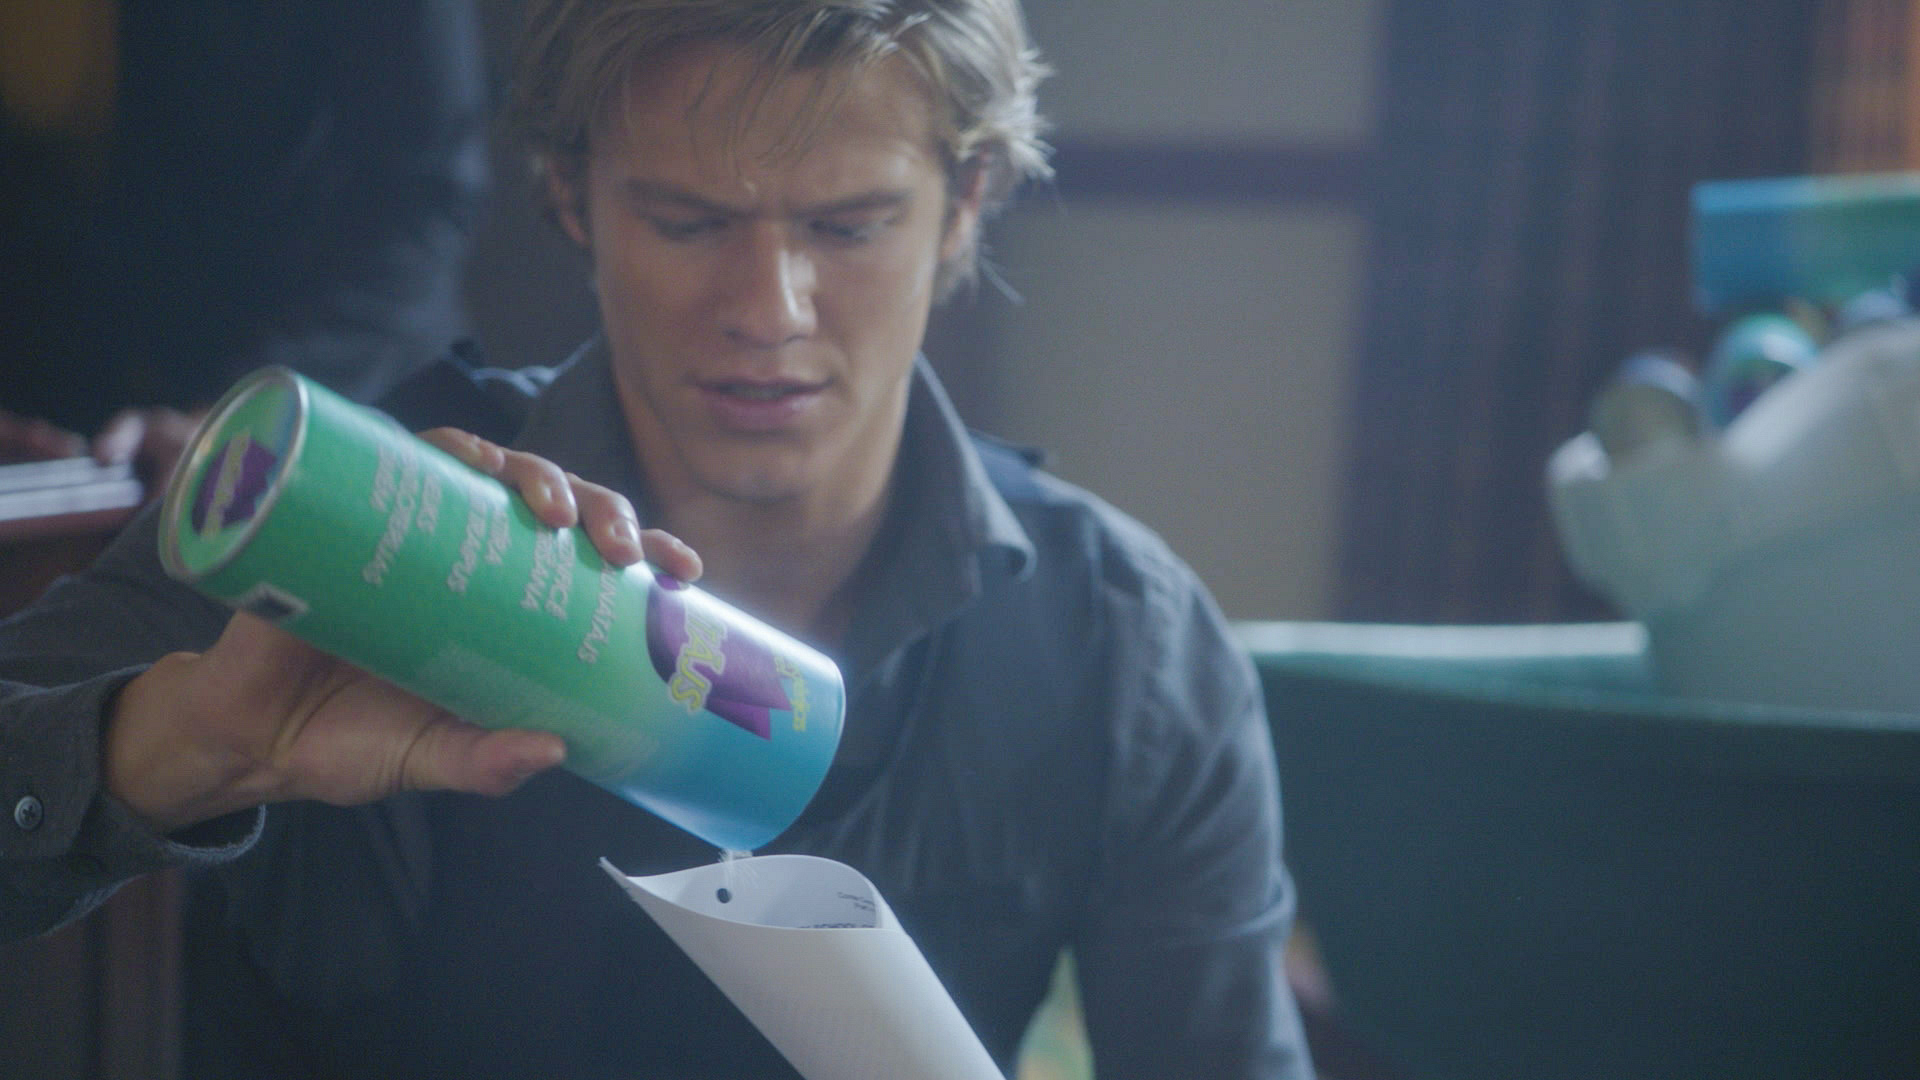 MacGyver pieces together a homemade missile launcher.